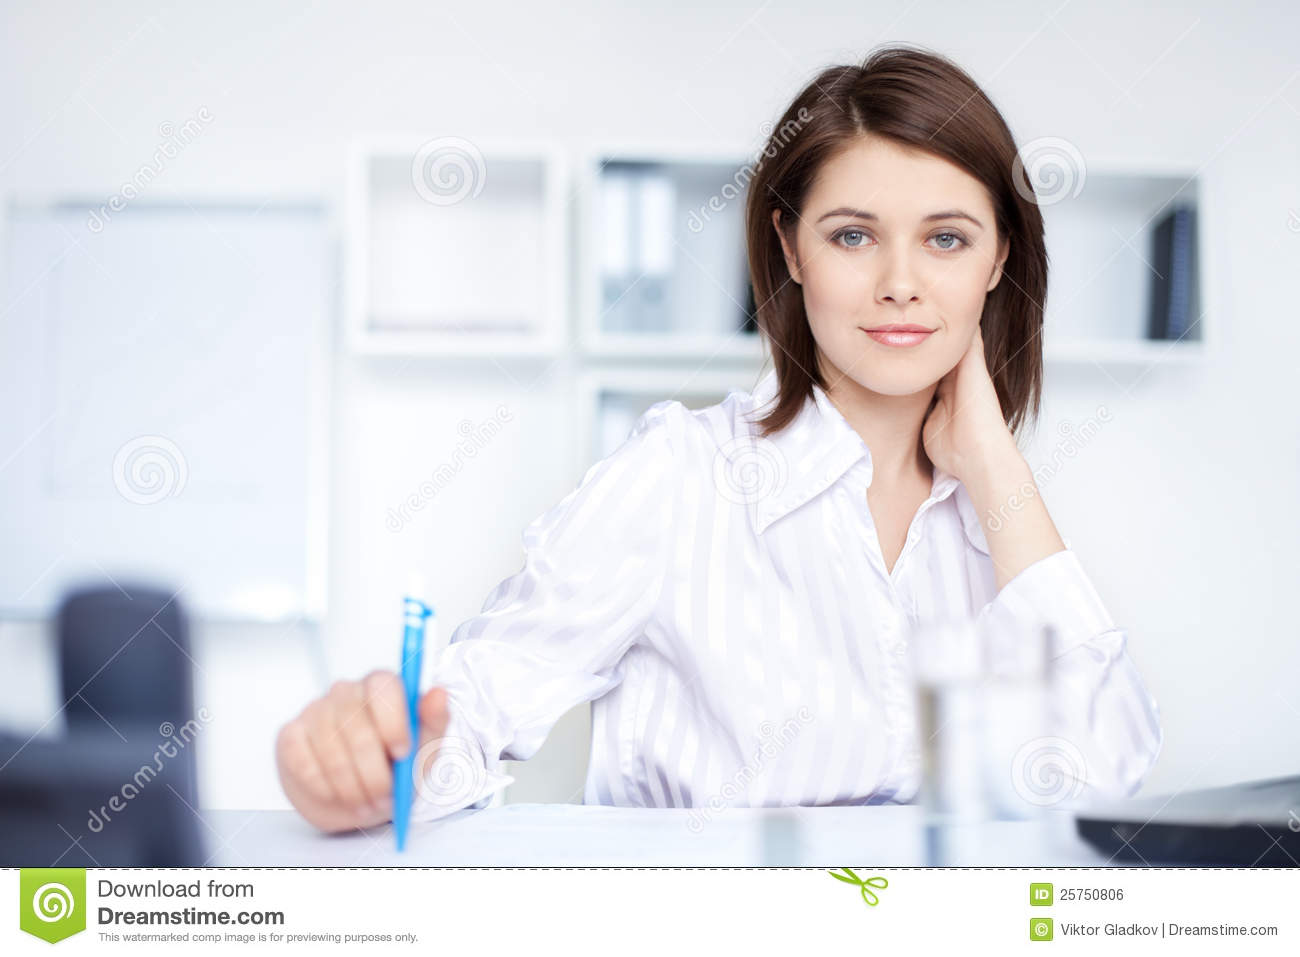 relaxed-young-business-woman-woman-office-25750806.jpg